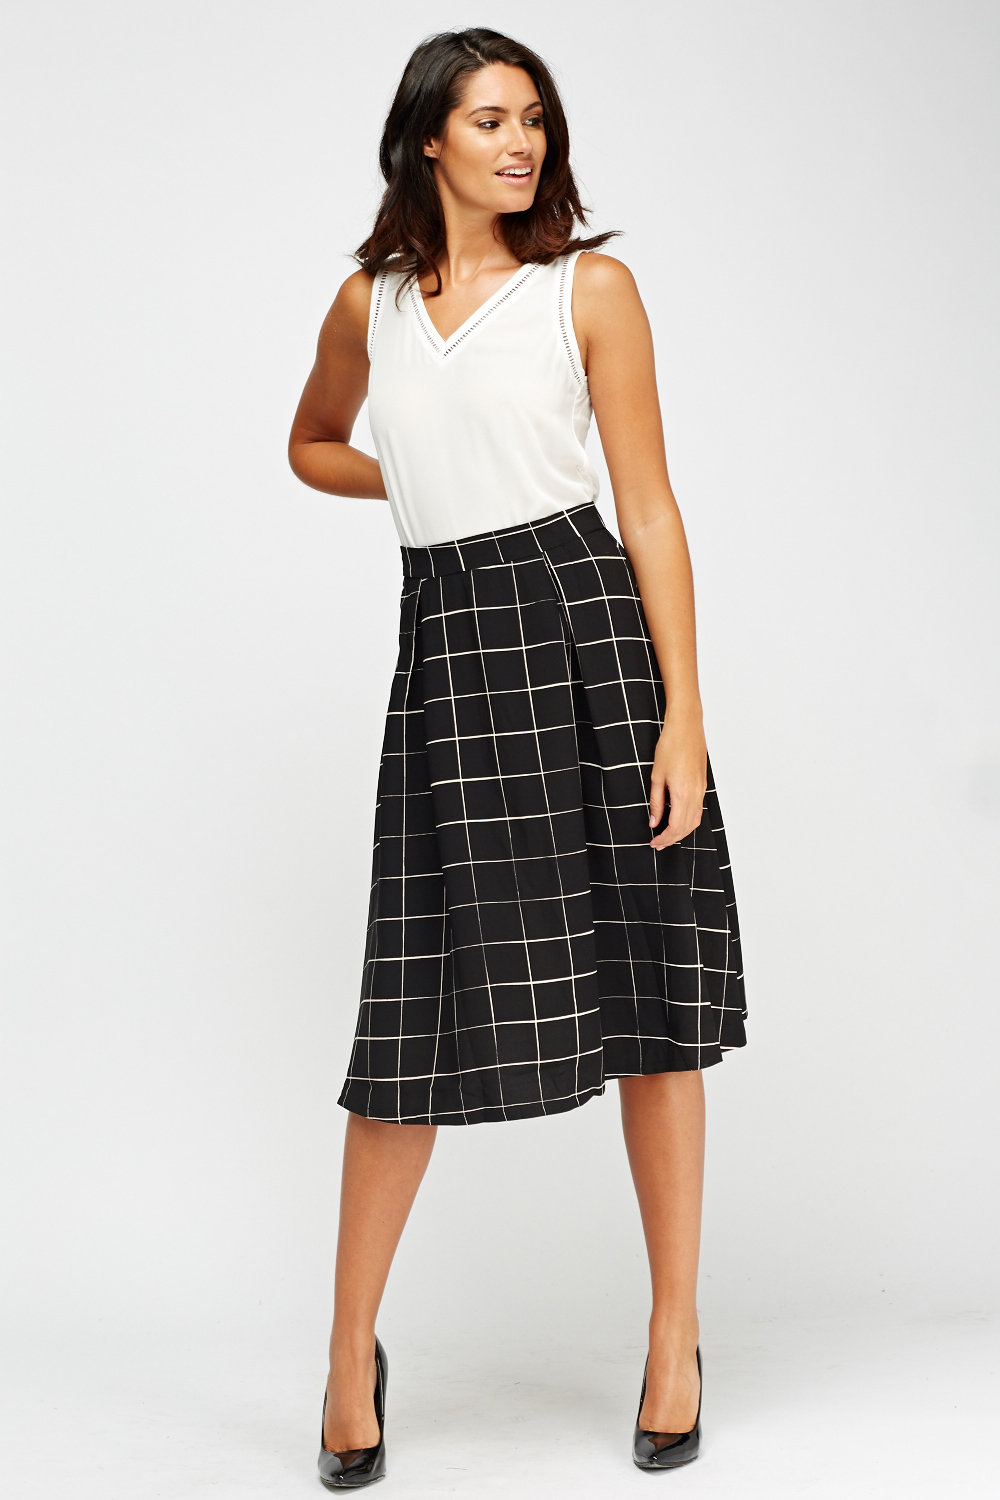 Pendleton Tartan Plaid Skirt Petite 14 Red Pleated Midi A Line Pure Wool USA See more like this Marks & Spencer Green Stripes/Plaid Trumpet Midi Skirt Steampunk UK 16 US 12/14 Pre-Owned.